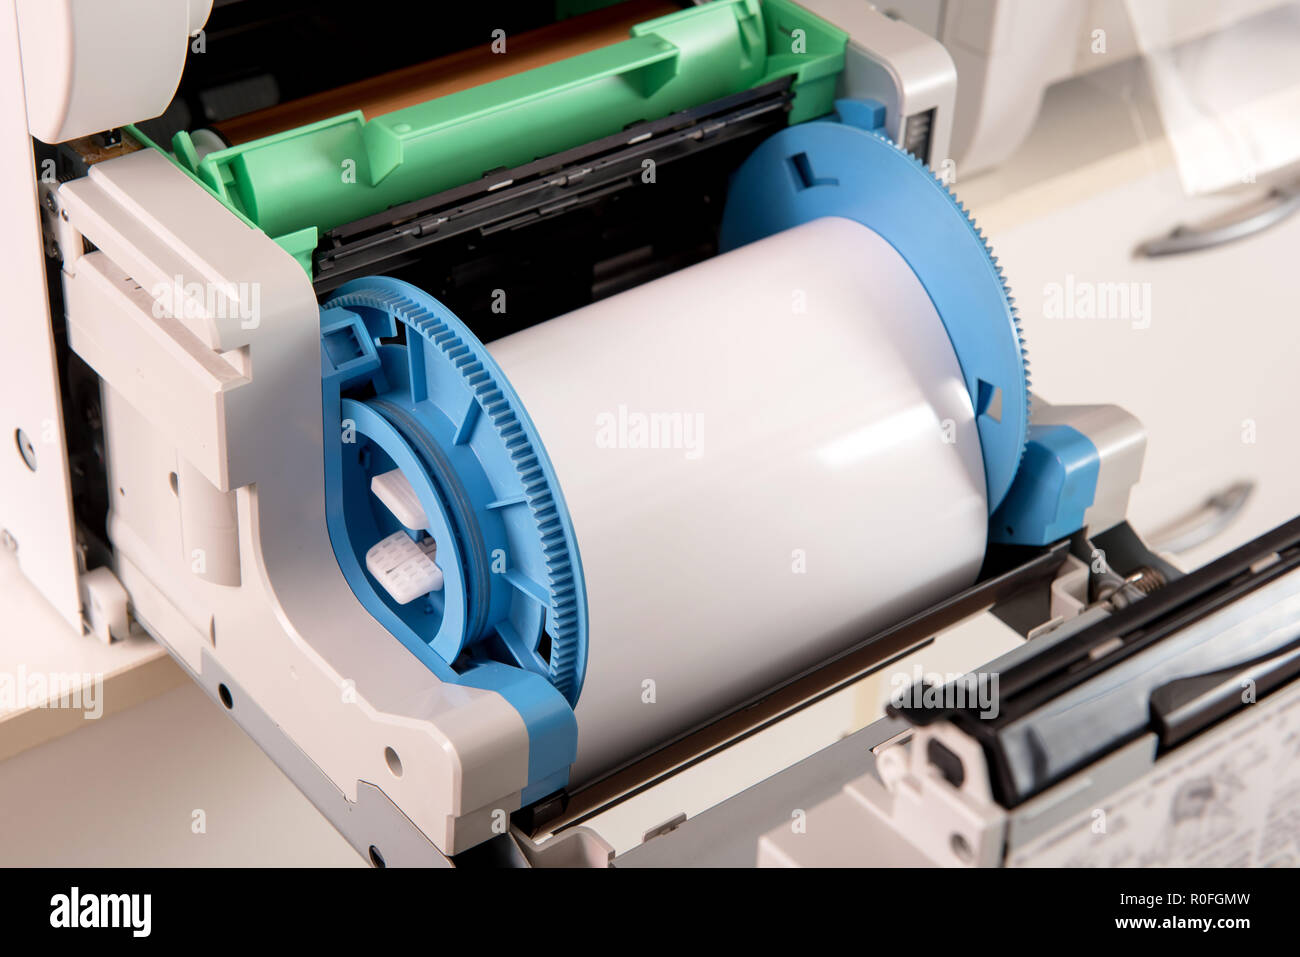 Used almost empty roll of photographic film paper on a printer in a printing house or studio in a closeup up view - Stock Image